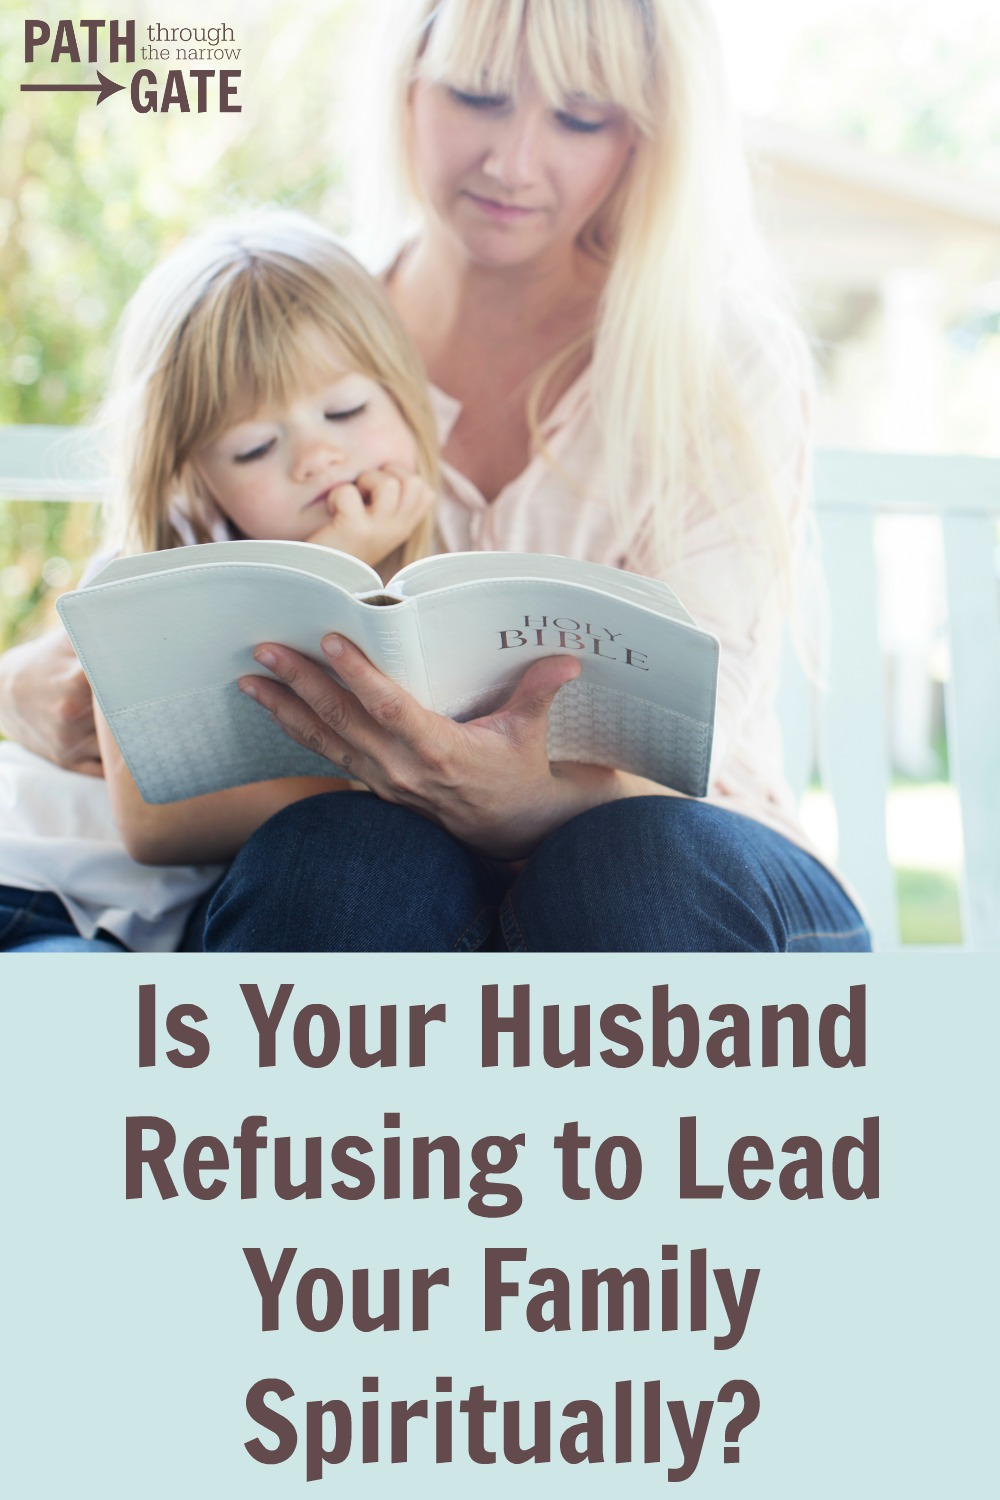 What can you do if your husband refuses to lead your family spiritually? Here are 6 Biblical responses for the Christian wife when this occurs.| Path Through the Narrow Gate